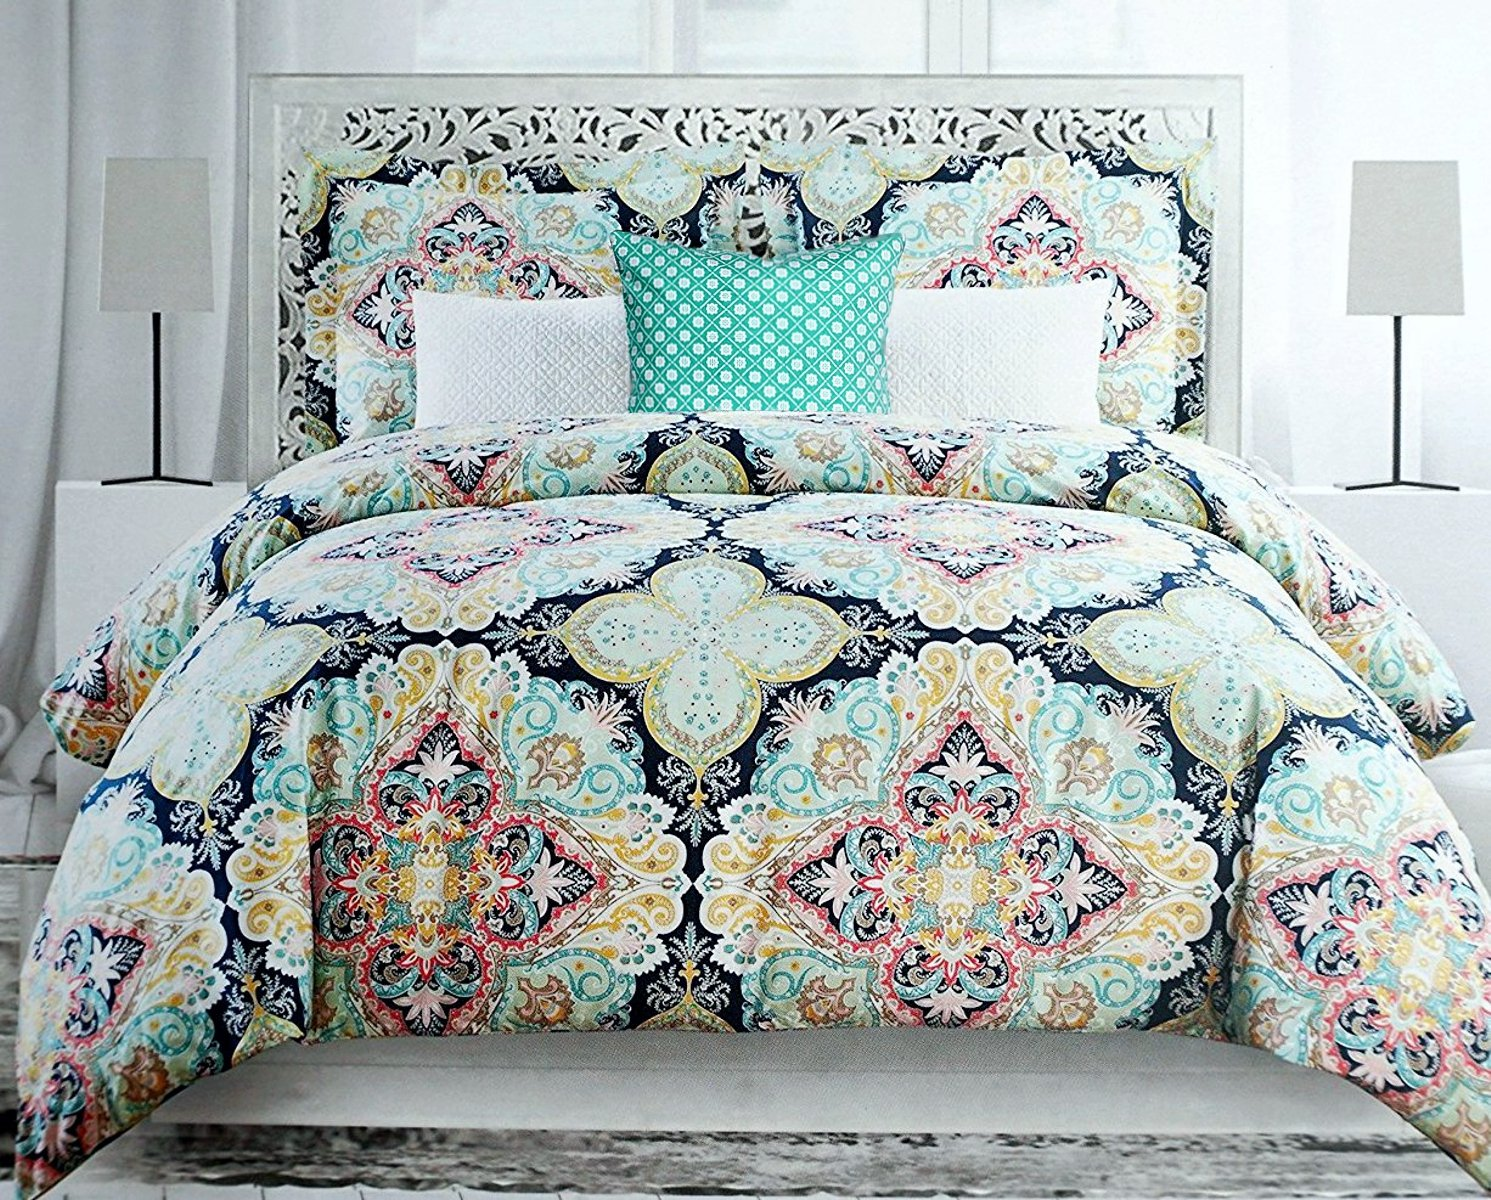 Envogue Colorful Boho Chic Bedding Bohemian Large Moroccan Medallions Duvet Cover Shams Bedding 4pc Set